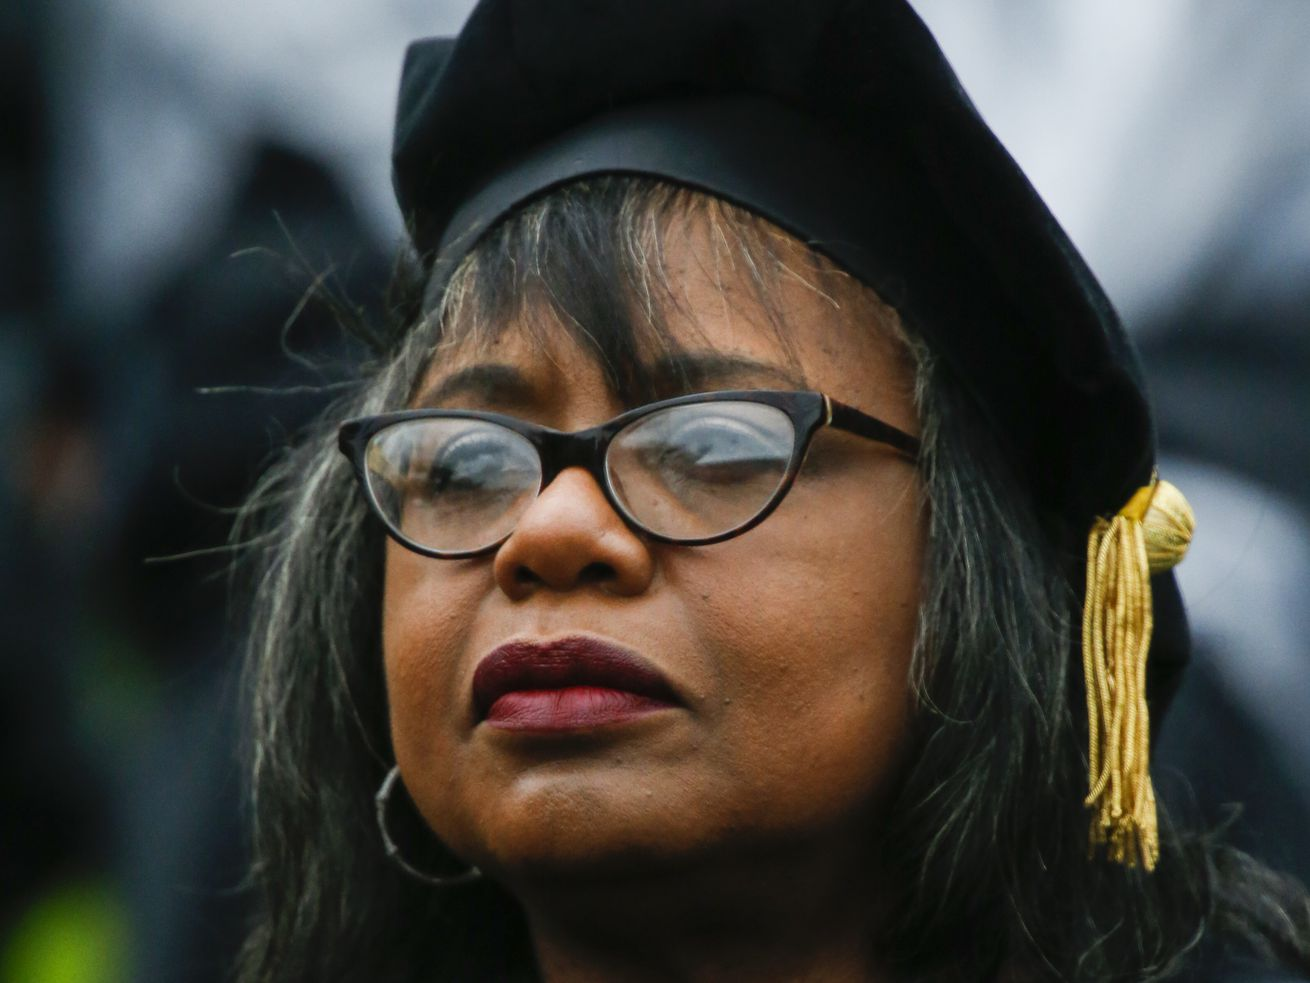 Law professor Anita Hill attends the commencement ceremony at Wesleyan University on May 27, 2018, in Middletown, Connecticut.